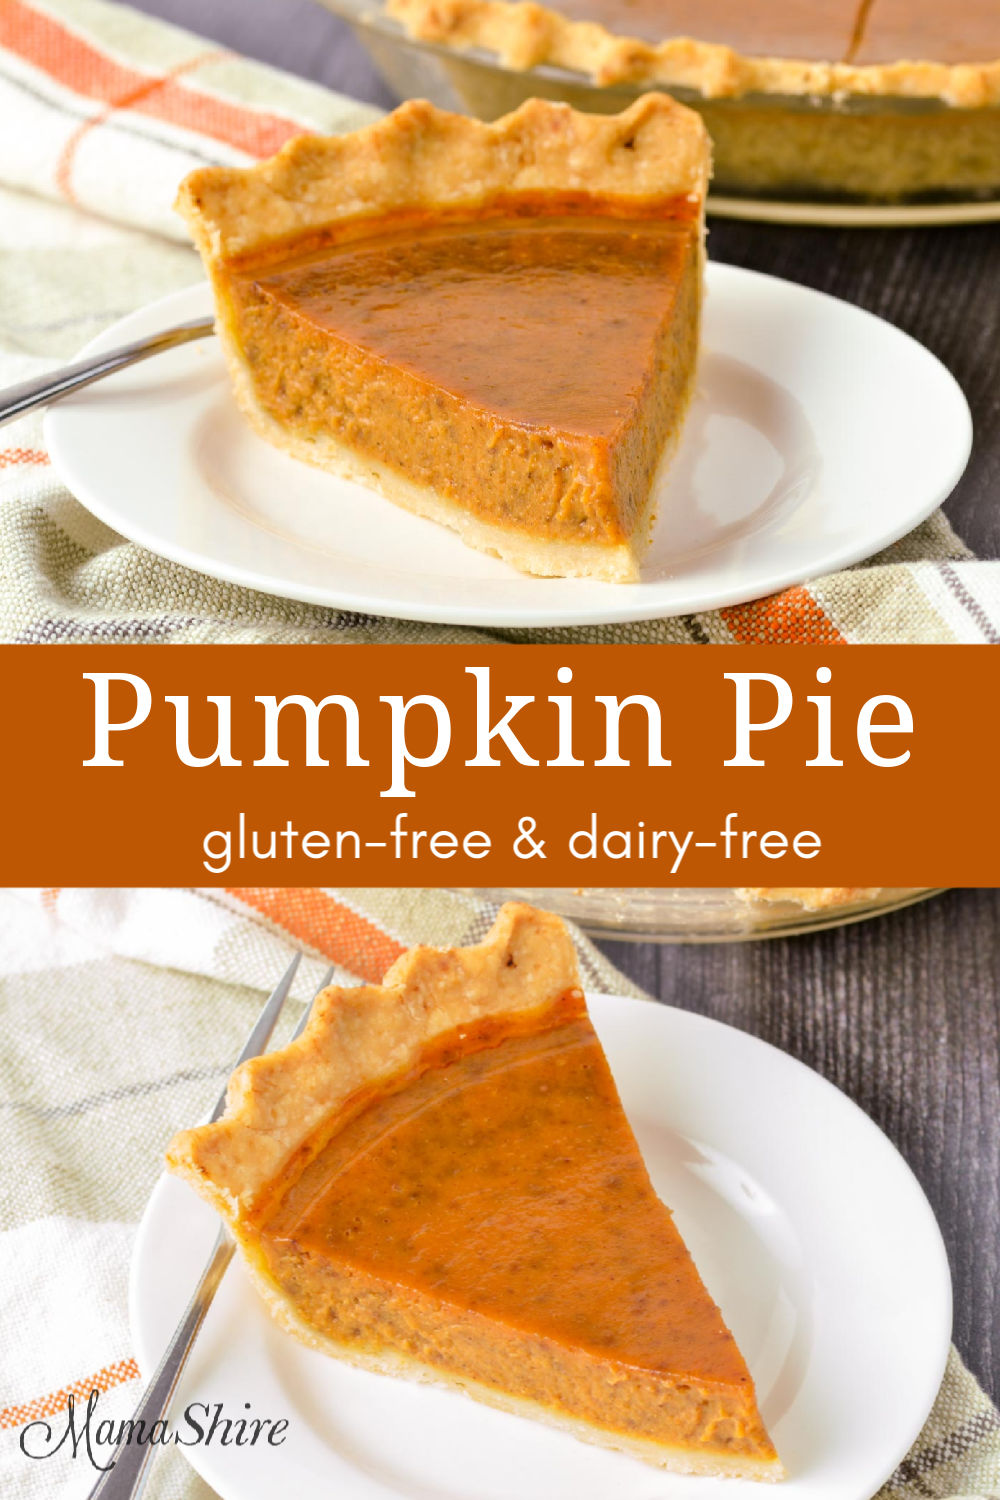 A slice of delicious pumpkin pie made with a gluten-free and dairy-free recipe.